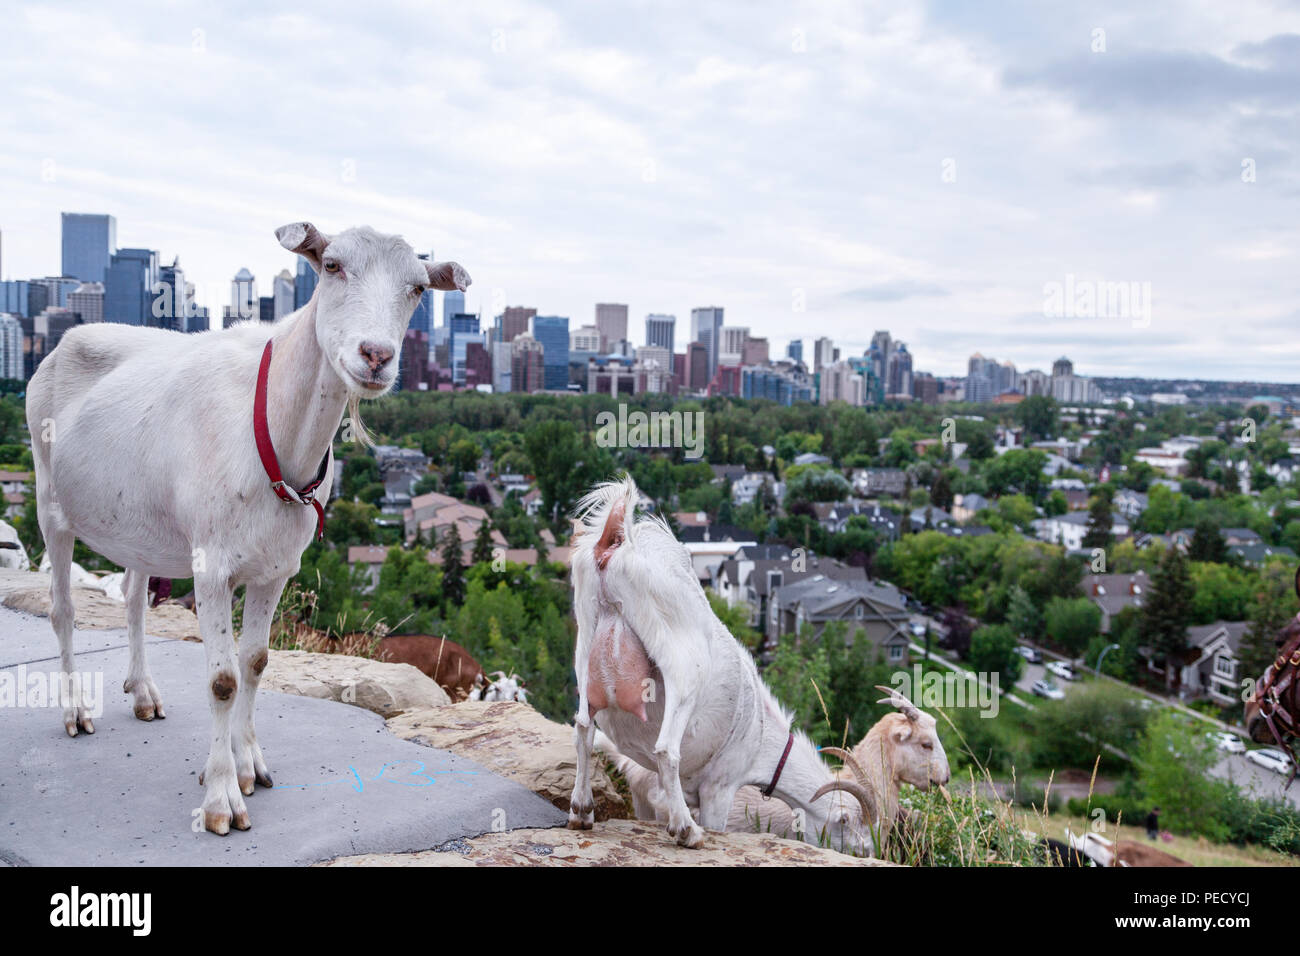 Goats eating up weeds in a Calgary park as part of the city's targeted grazing plan for invasive weed species management using environmentally friendl Stock Photo